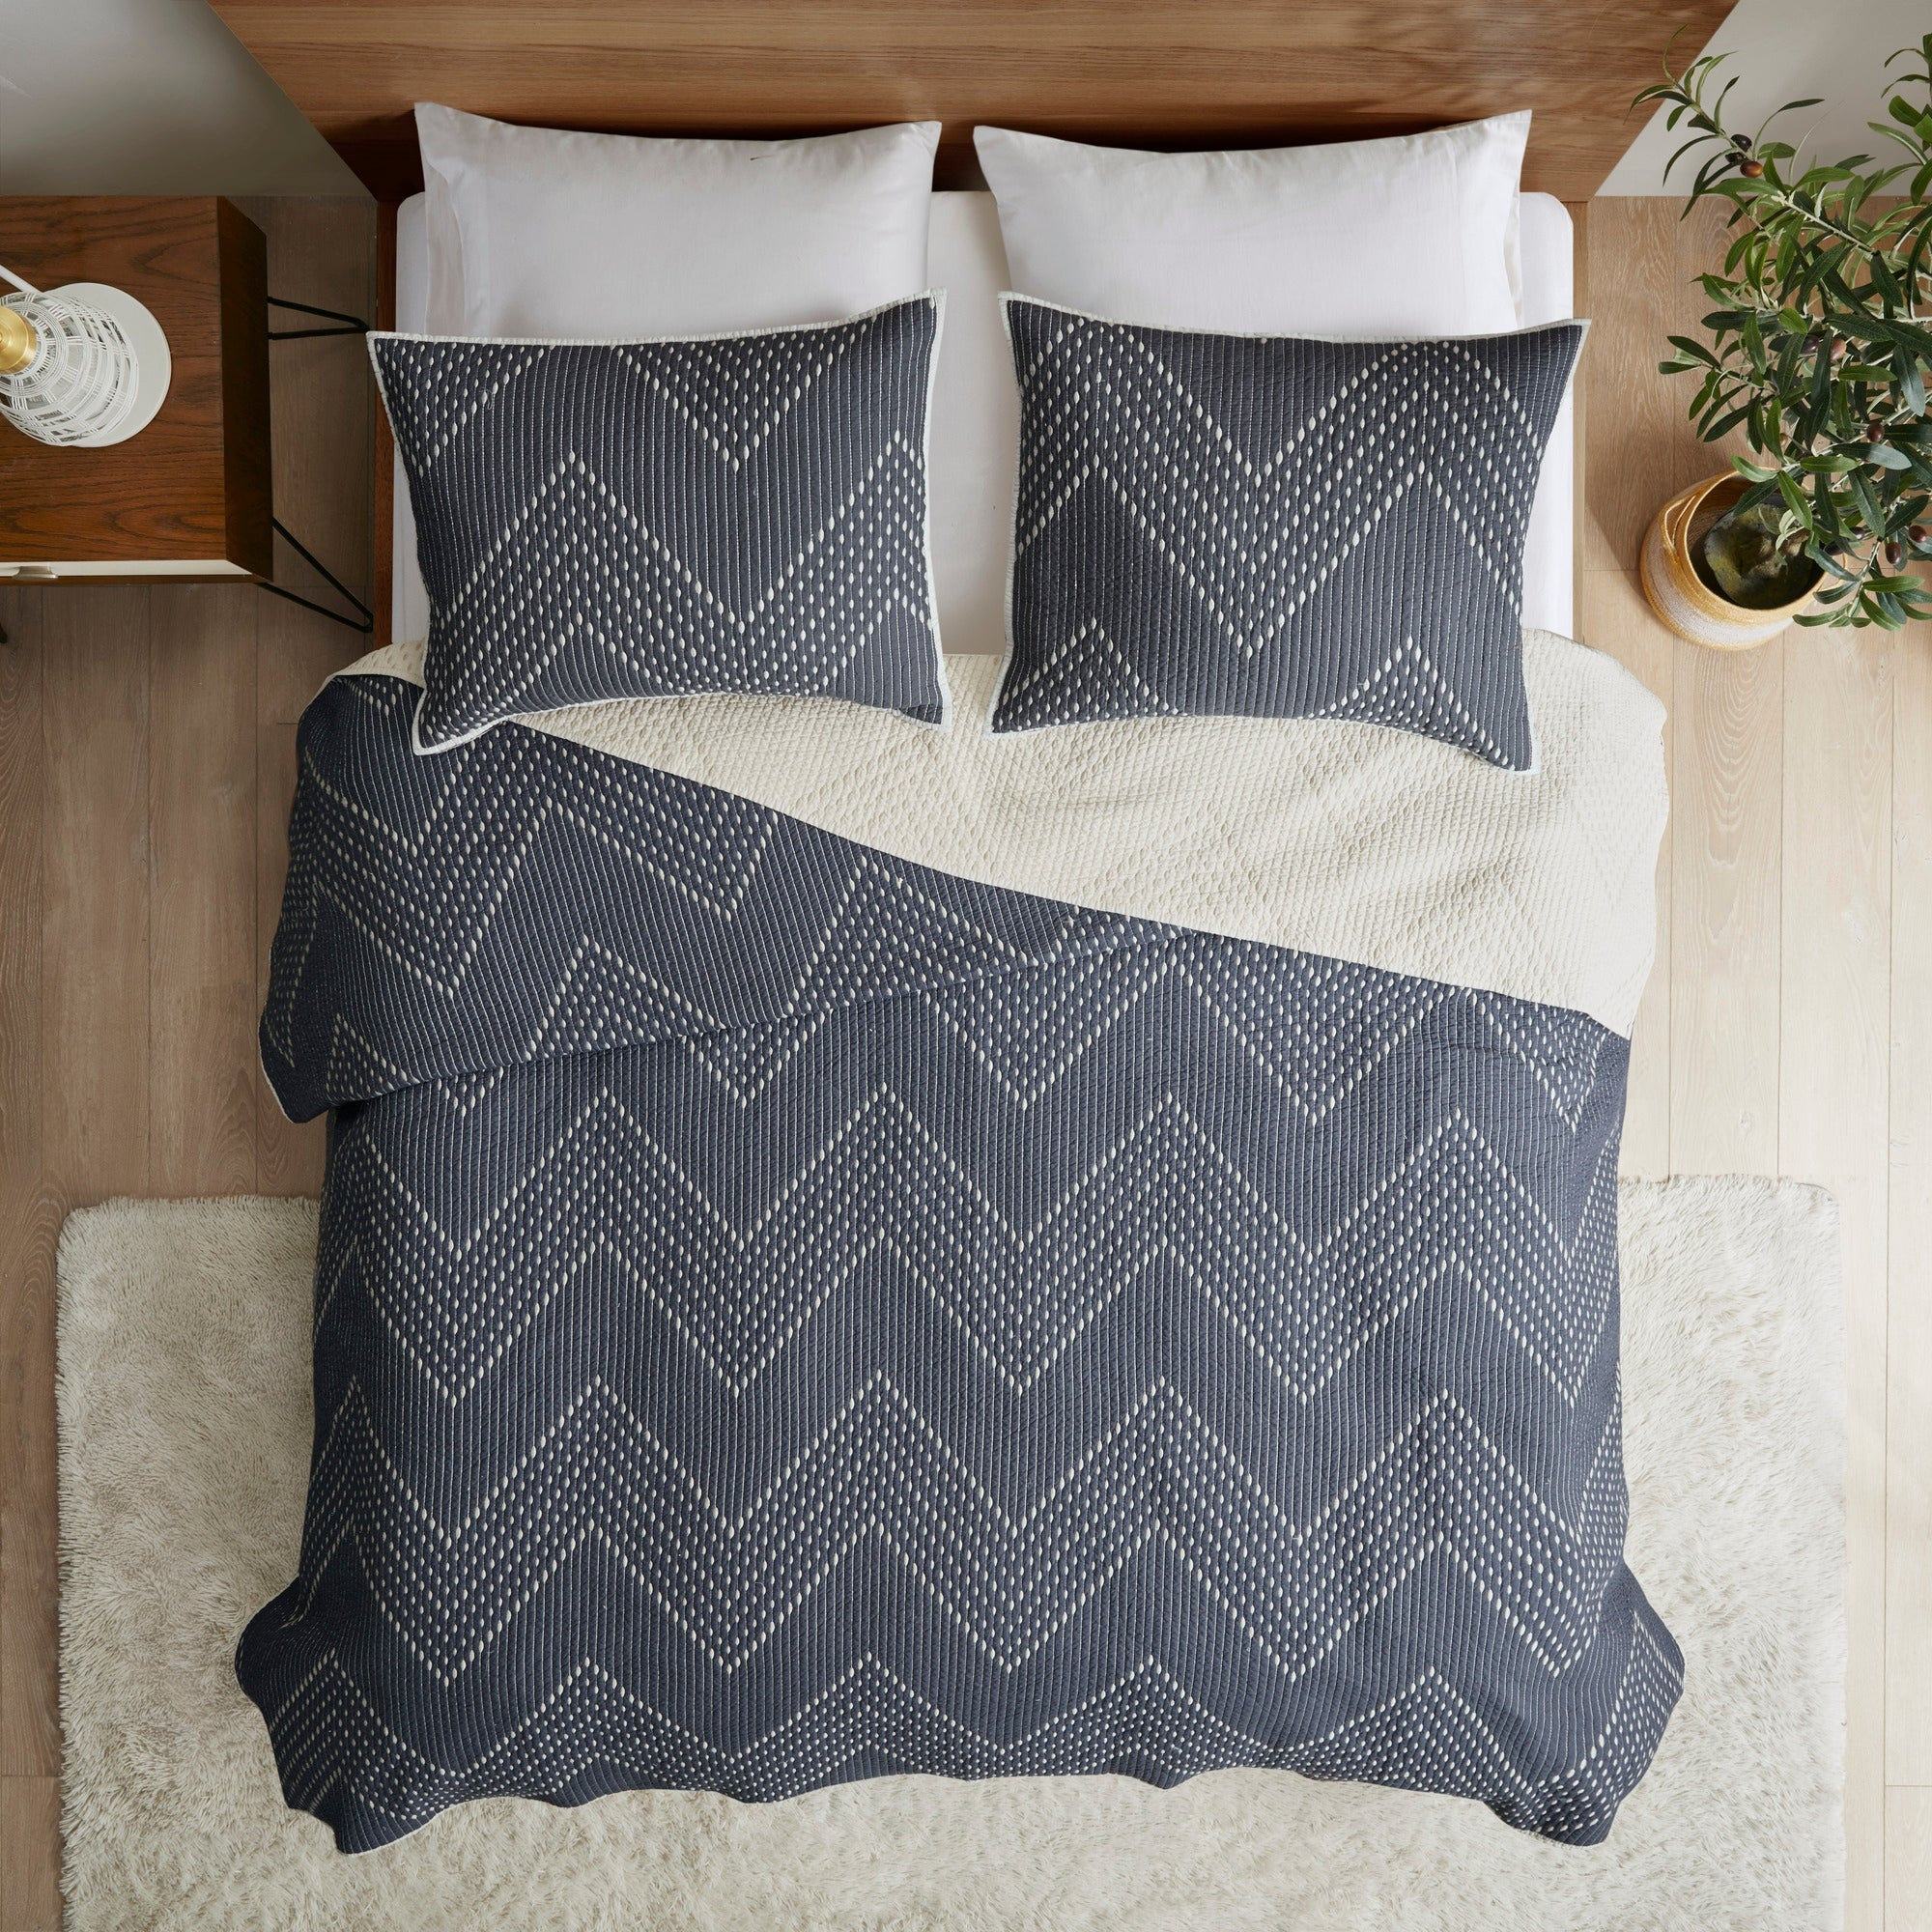 Pomona Cotton Coverlet Set By Ink Ivy On Sale Overstock 10383706